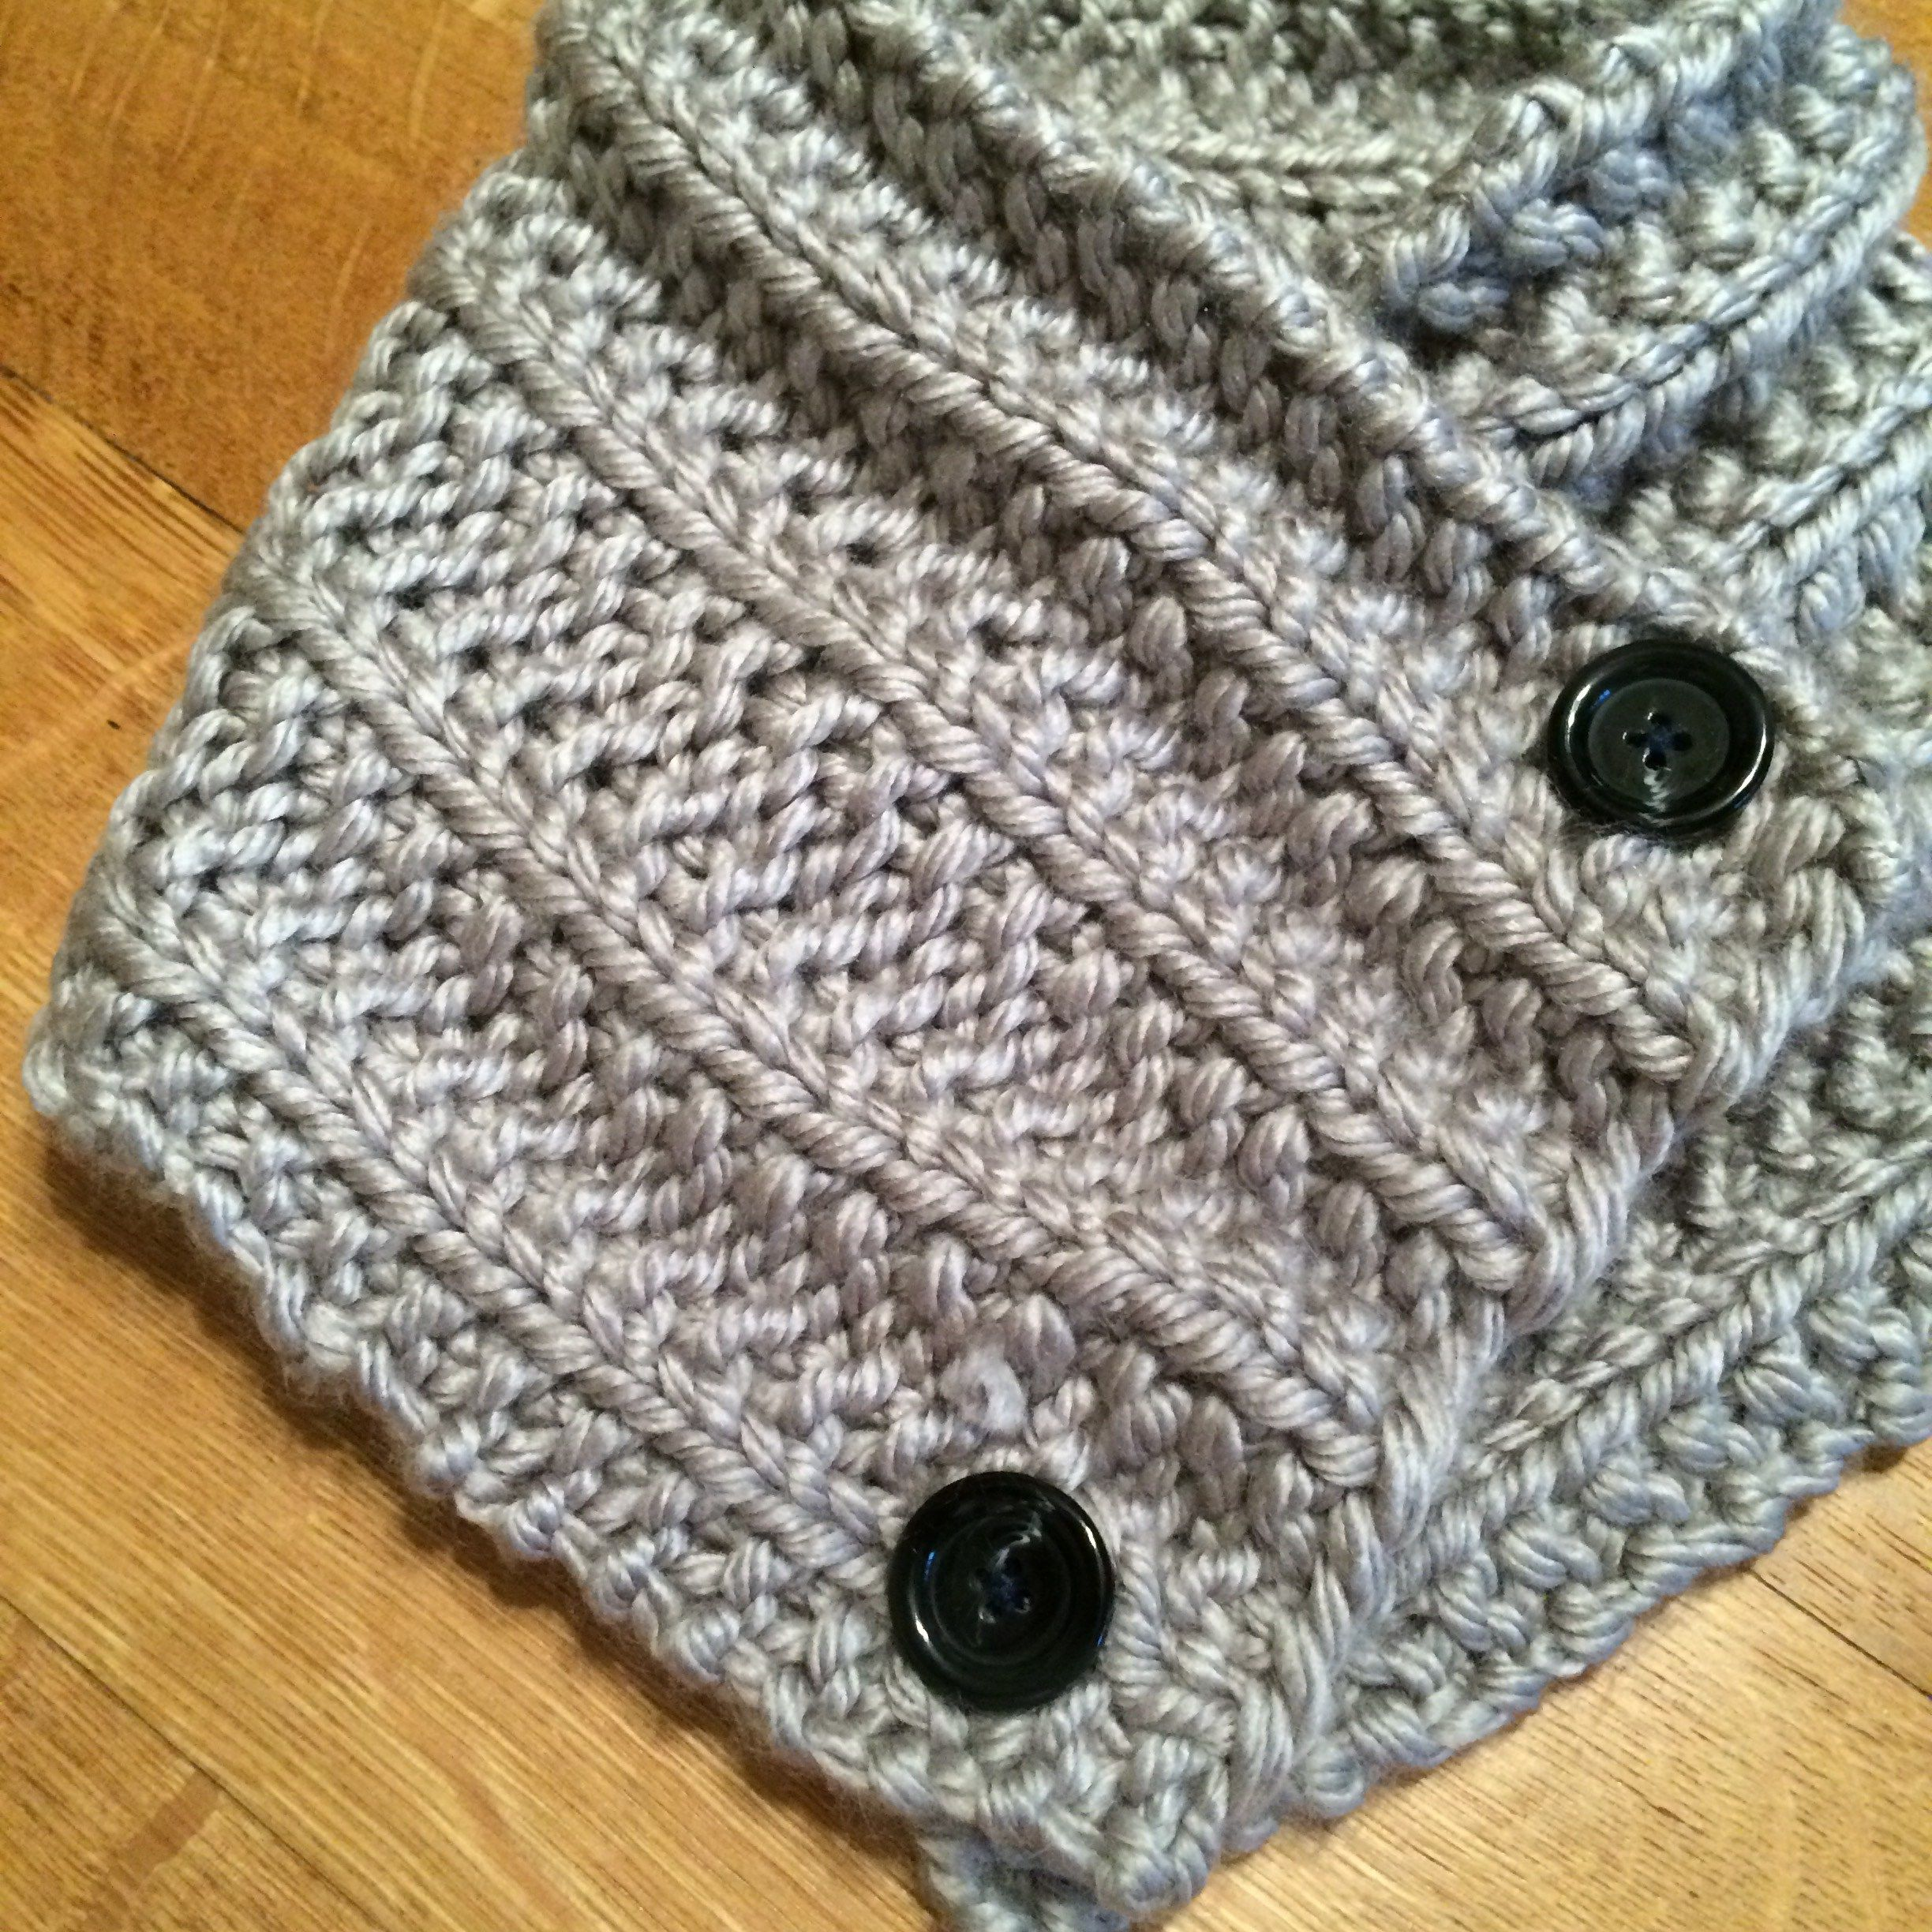 Knitted Neck Warmer | Crochet neck warmer, Crochet leg ...